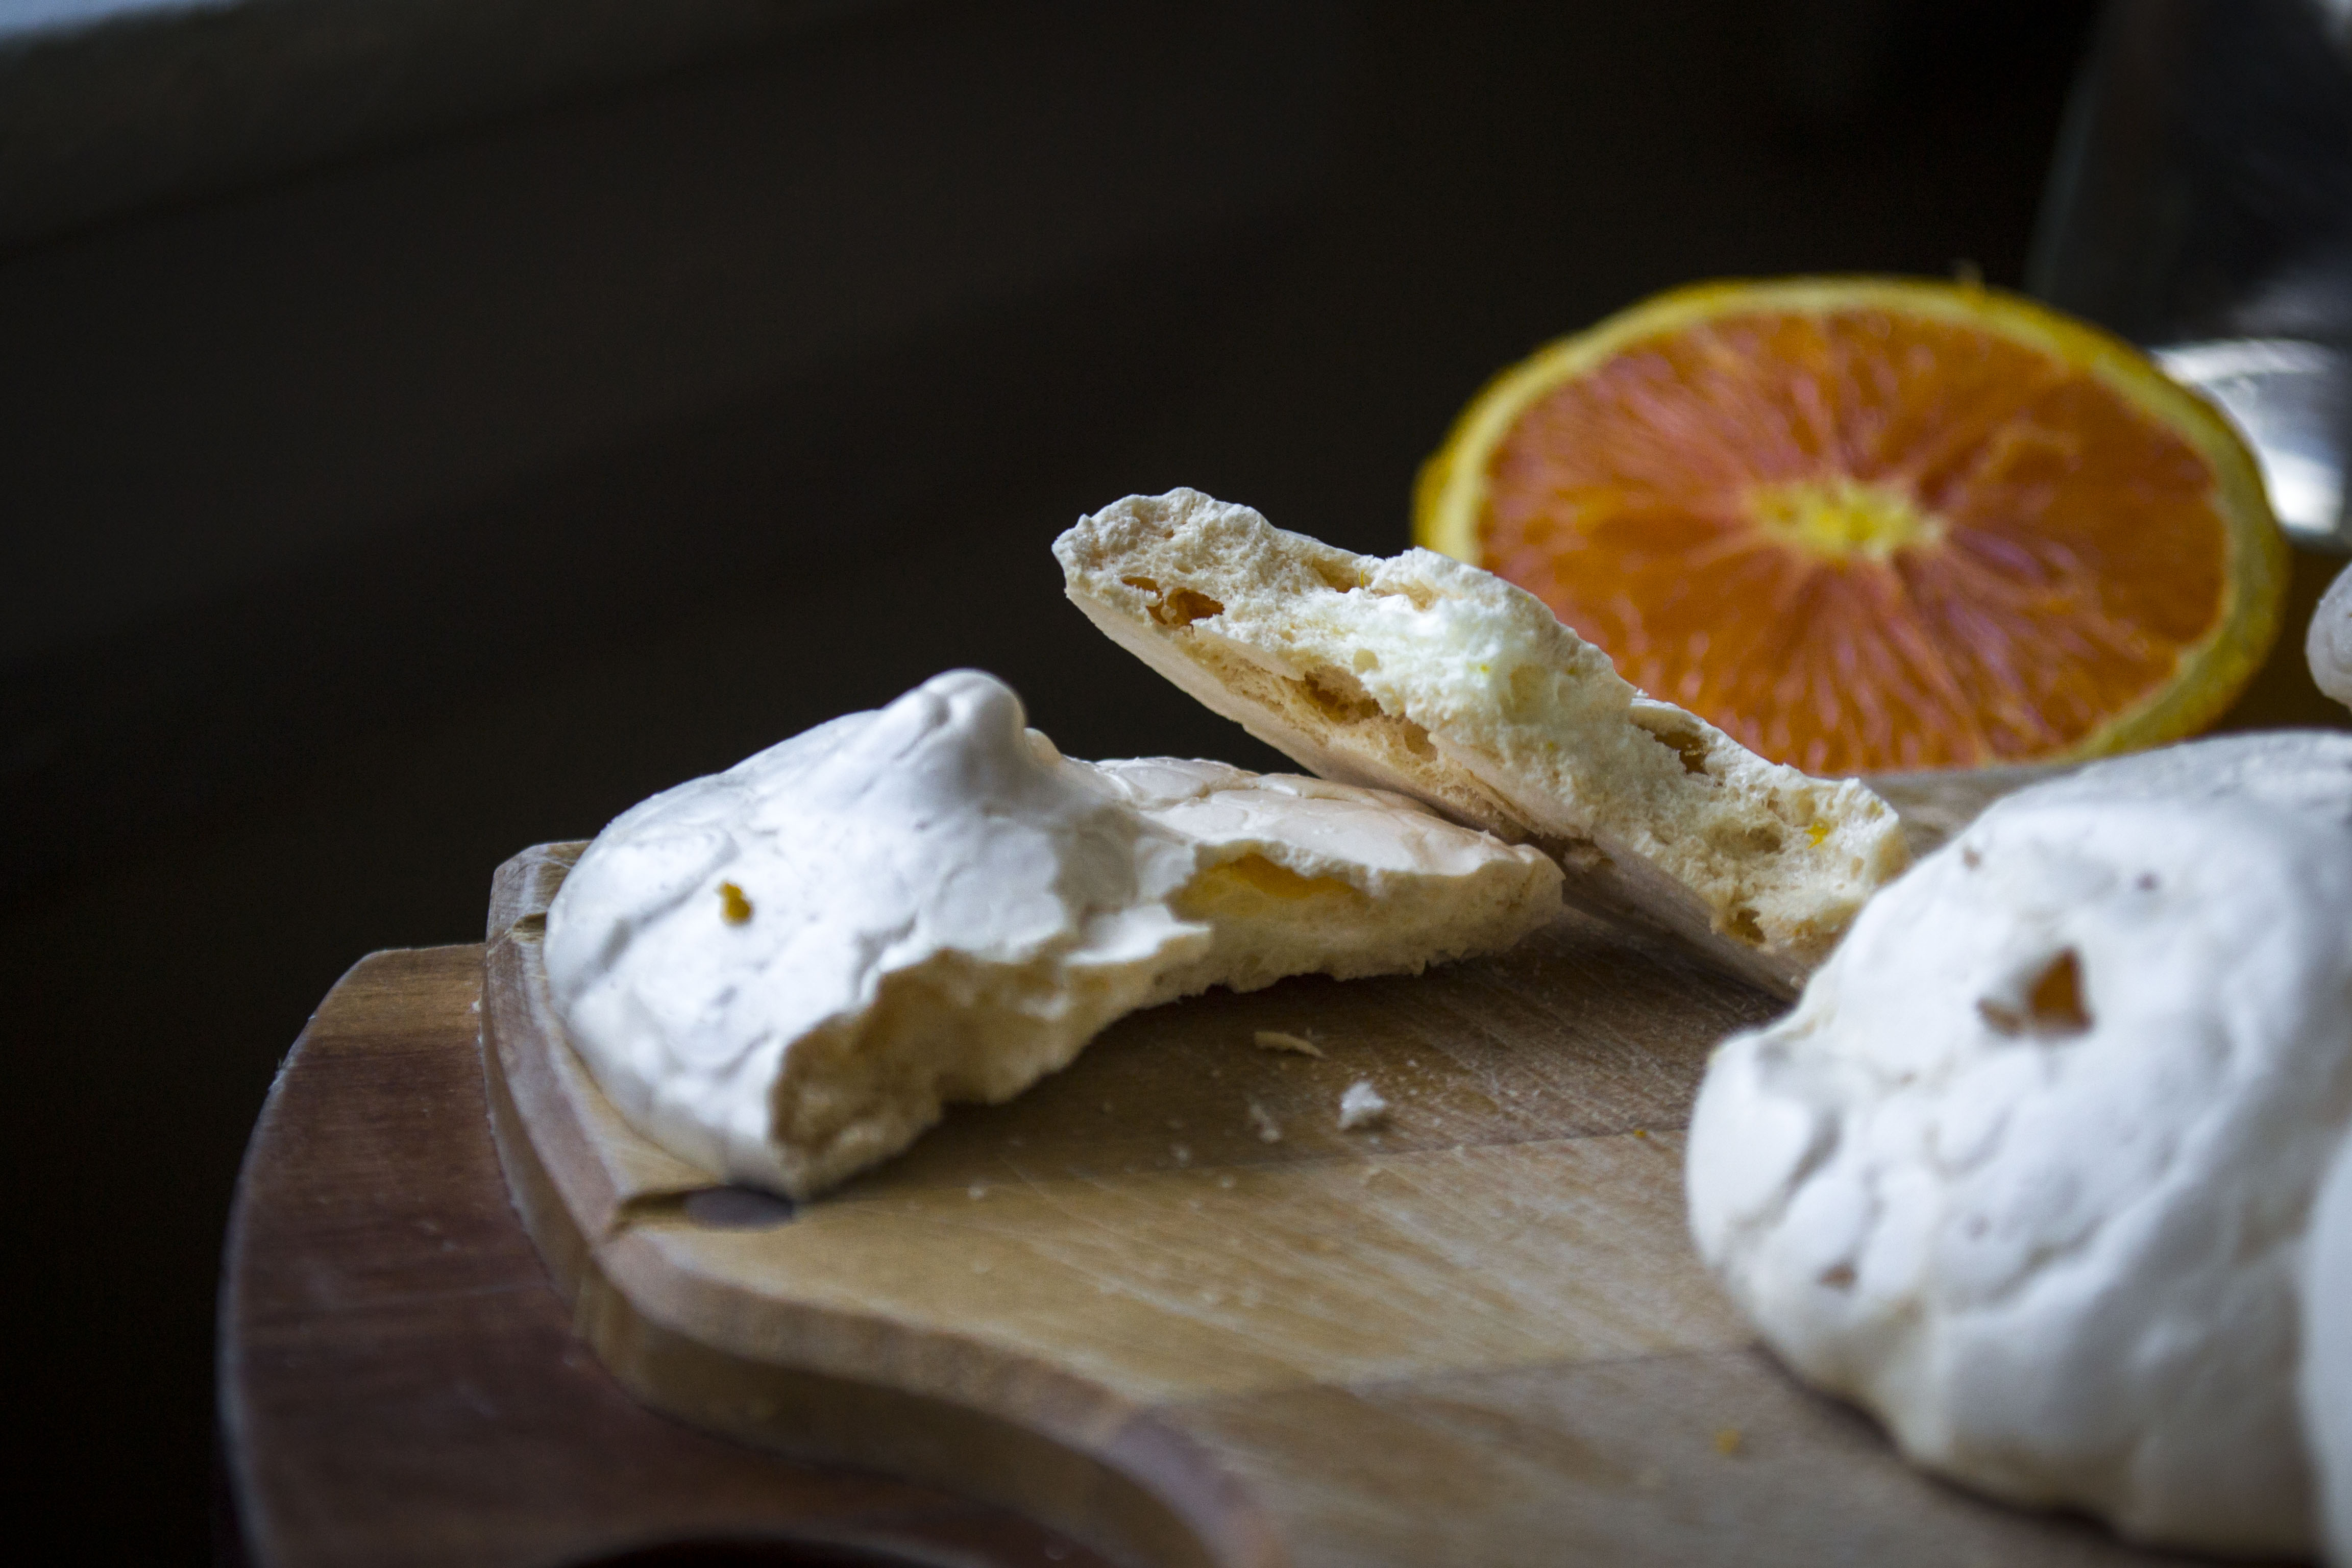 Crispy on the outside and chewy on the inside, these orange-scented meringues make a delicious and light springtime snack. ALAN BENNETT/Journal Tribune